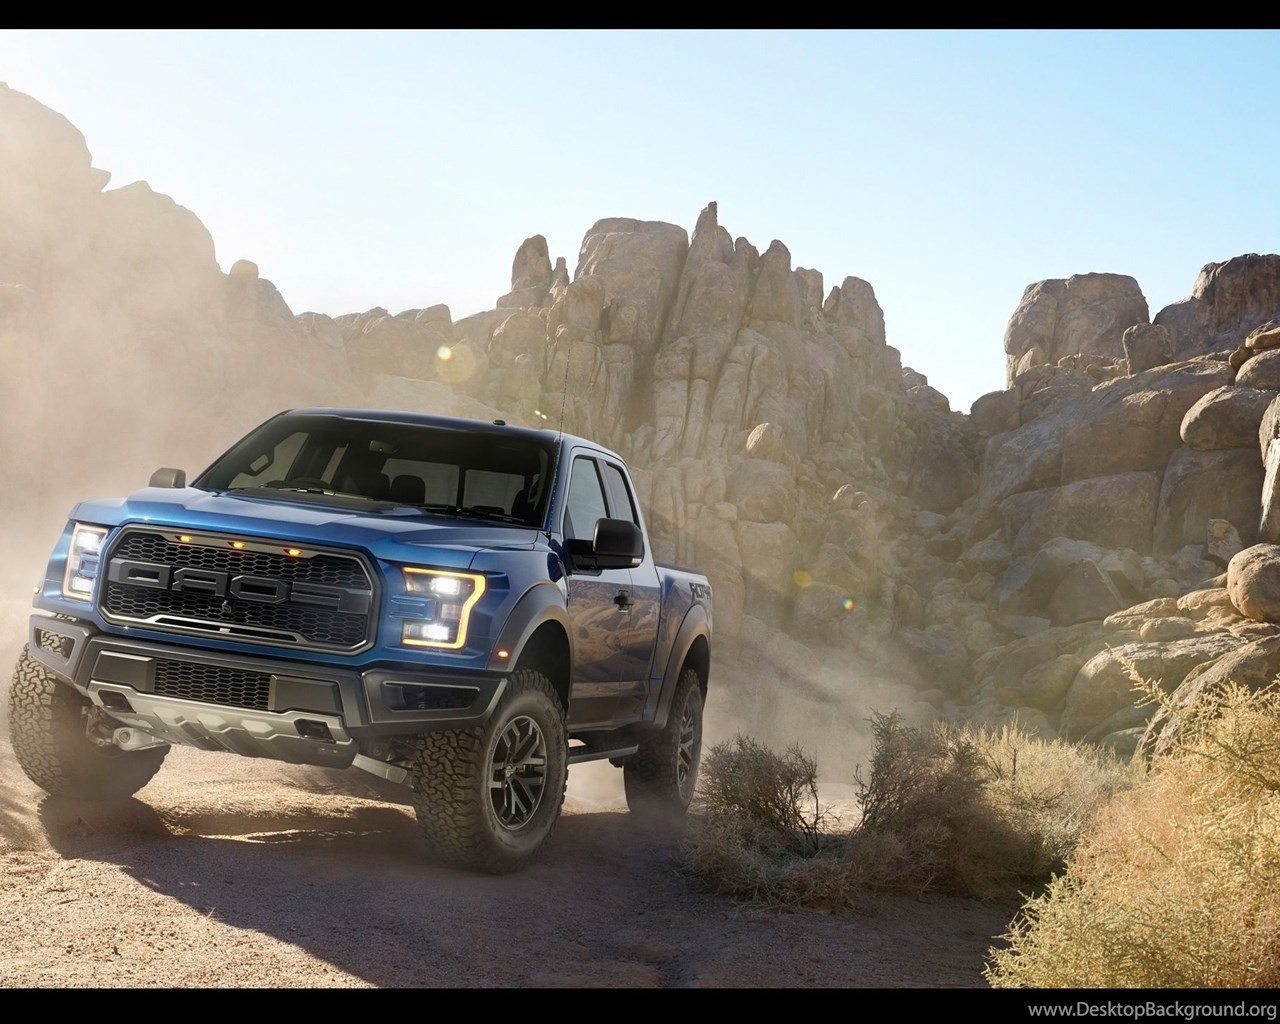 2017 Ford Raptor Wallpapers Image Desktop Background